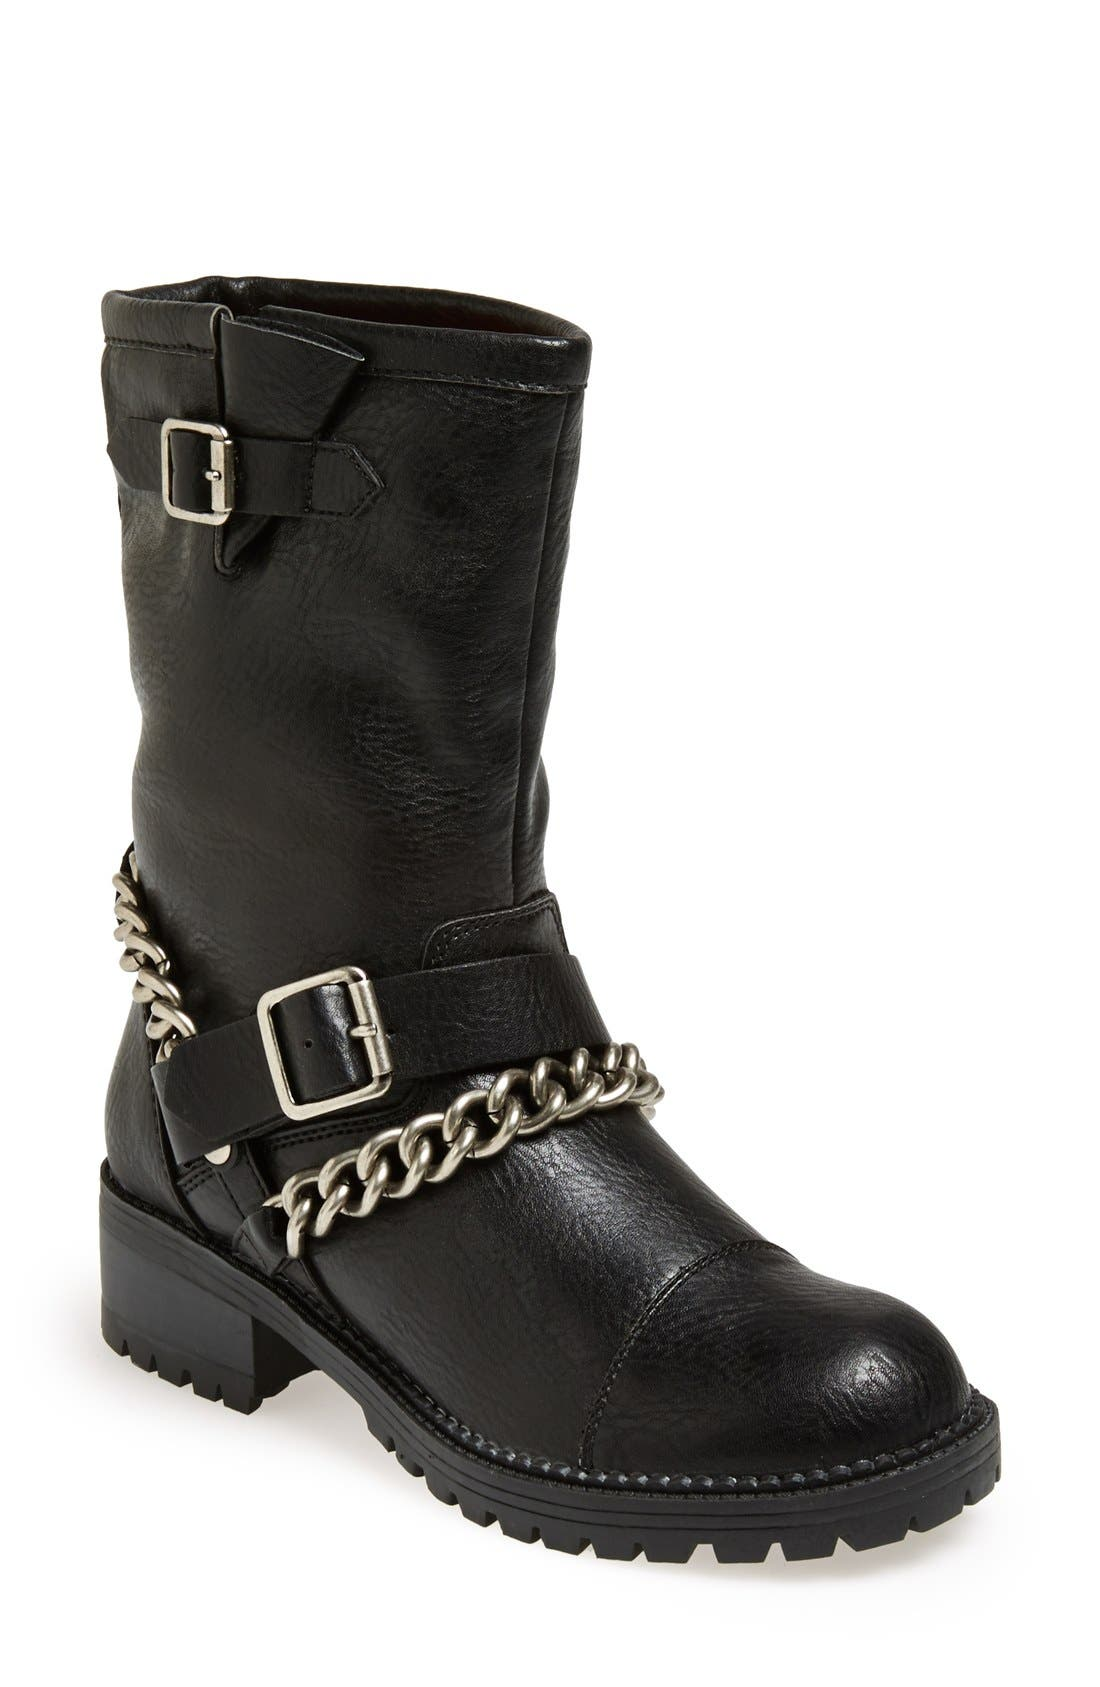 KENDALL + KYLIE Madden Girl 'Bedforrd' Chain Wrapped Biker Bootie,                             Main thumbnail 1, color,                             003